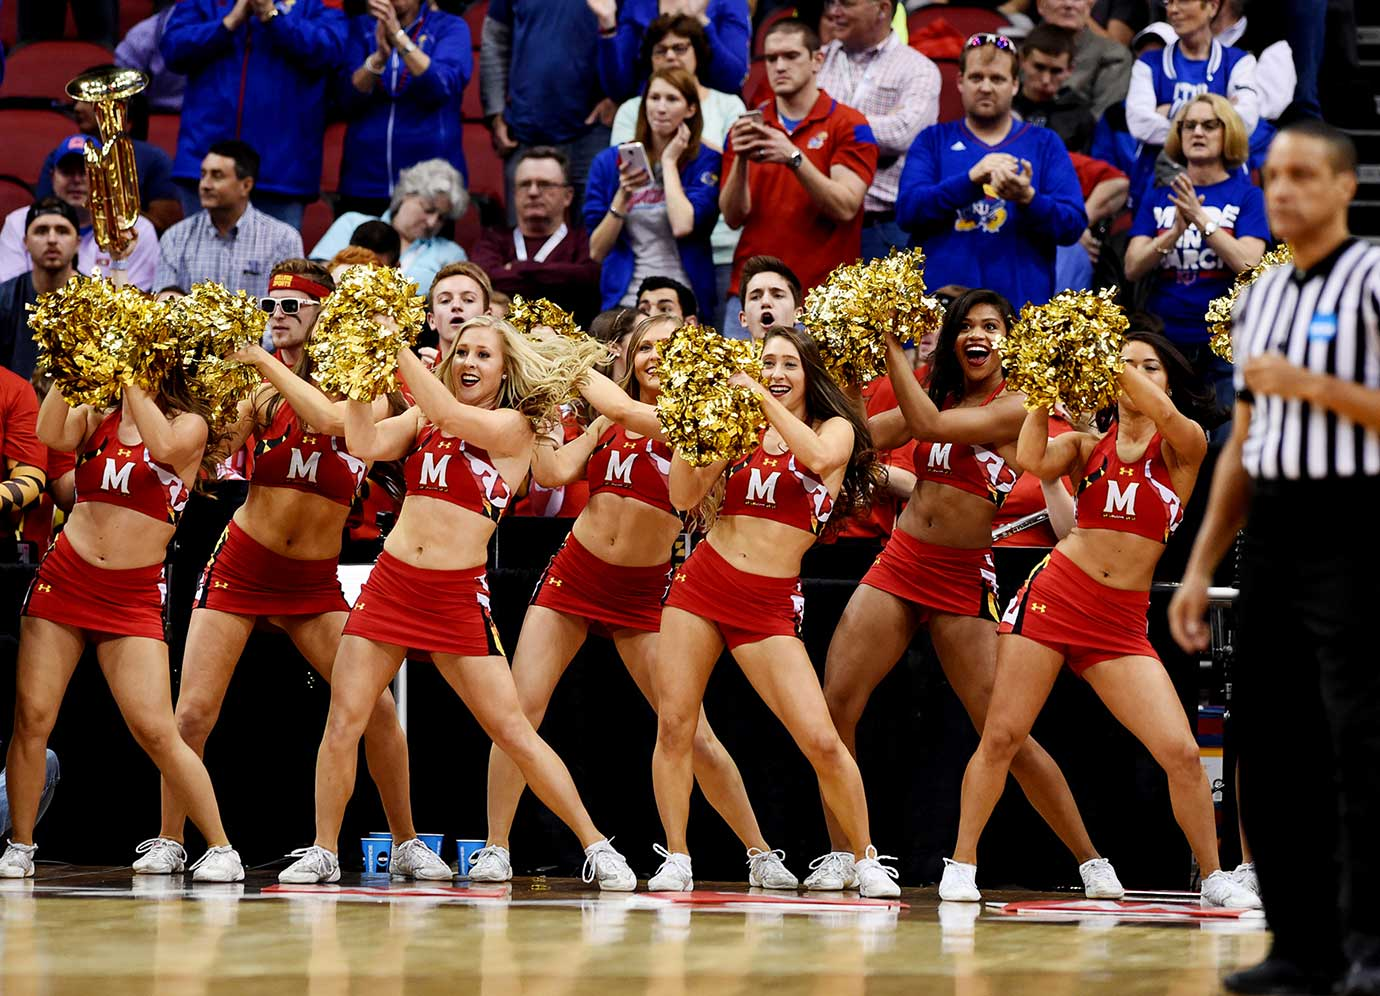 The Maryland cheerleaders during the game against Kansas.